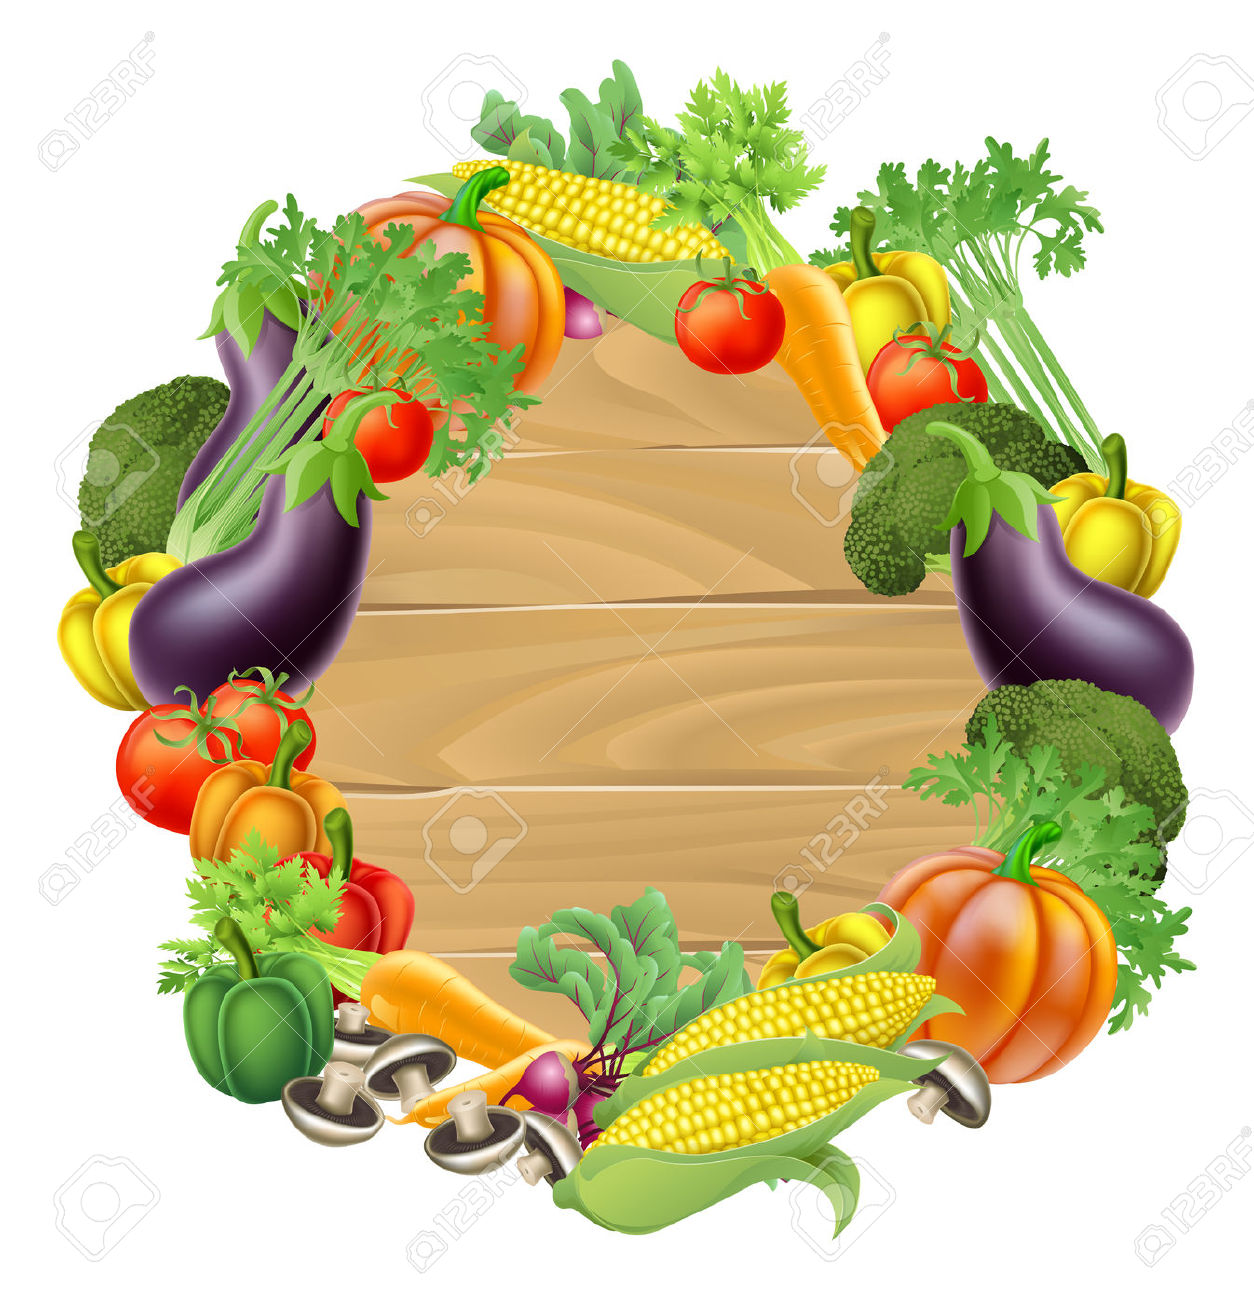 81,080 Fruits Vegetables Stock Vector Illustration And Royalty.